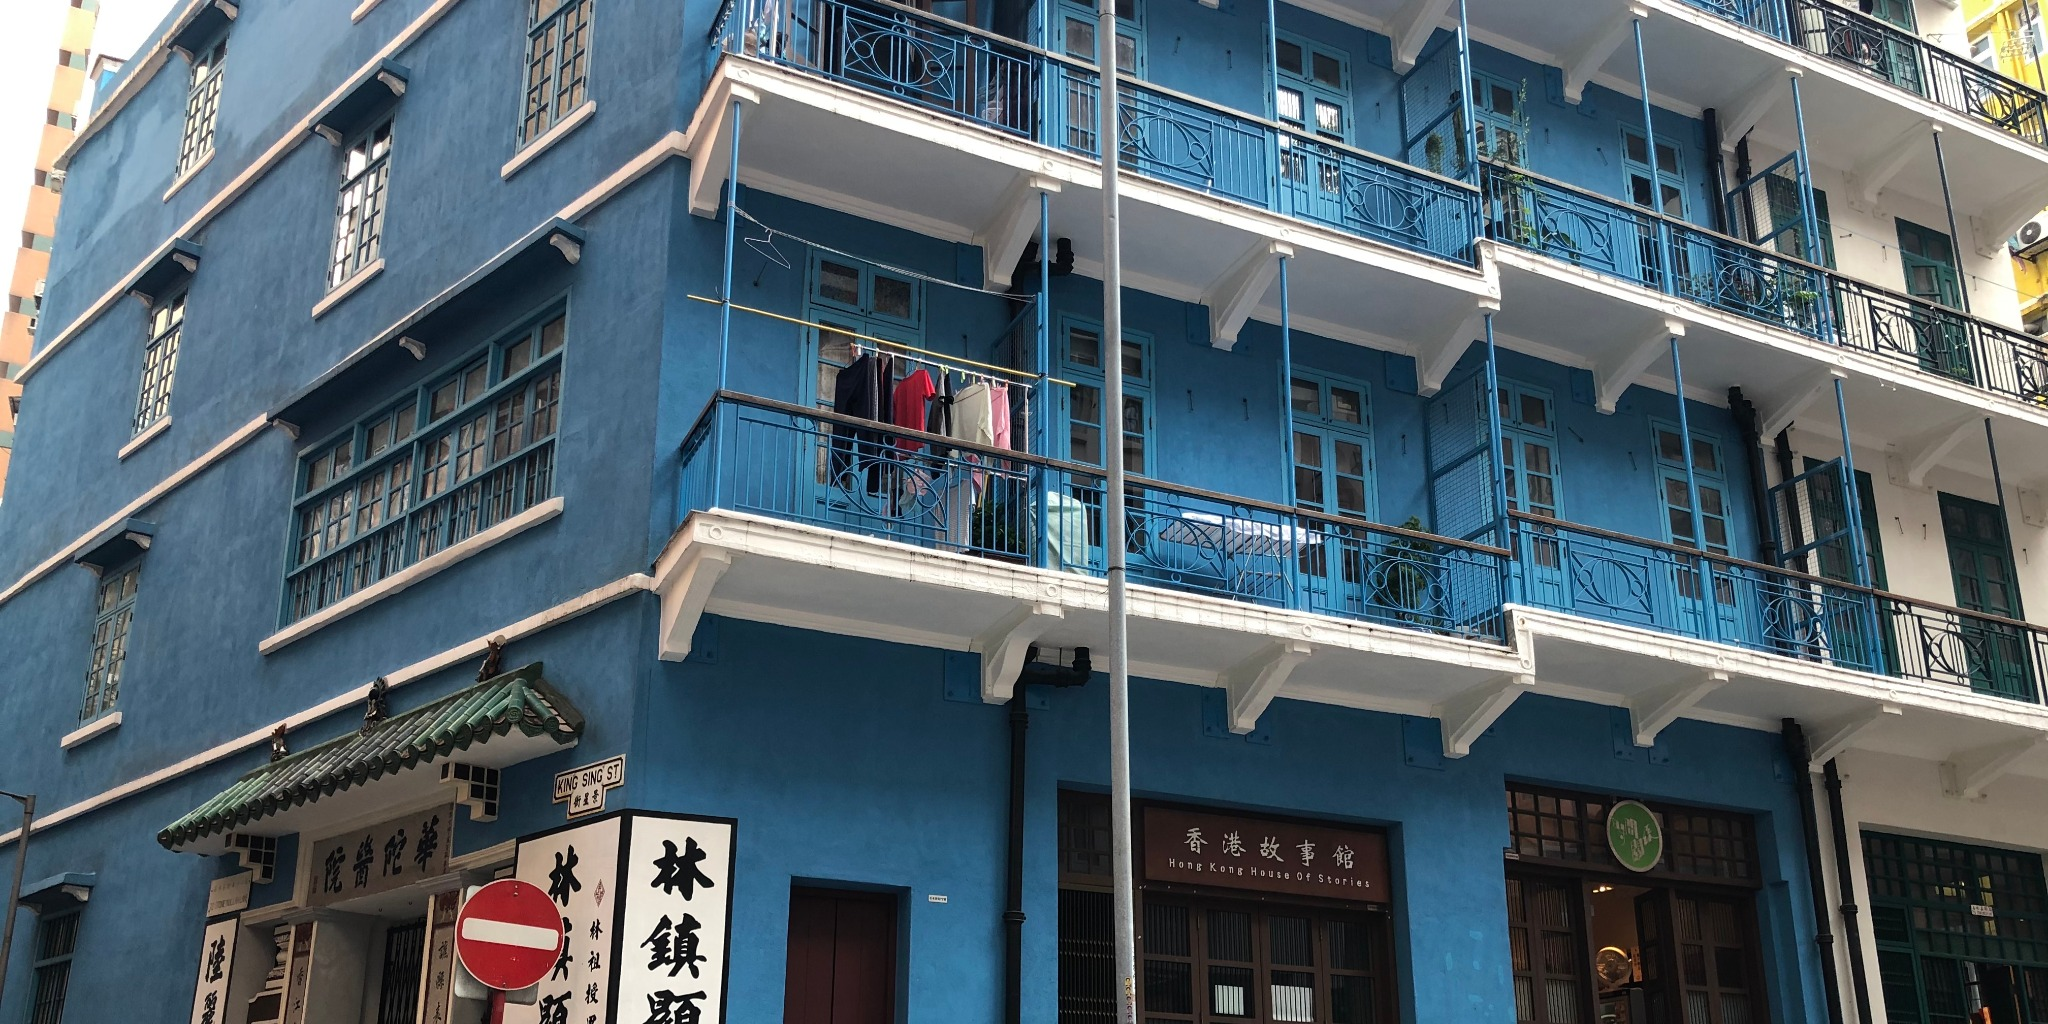 City Spotlight | Wan Chai Heritage Trail Part I: Architectural heritage trail